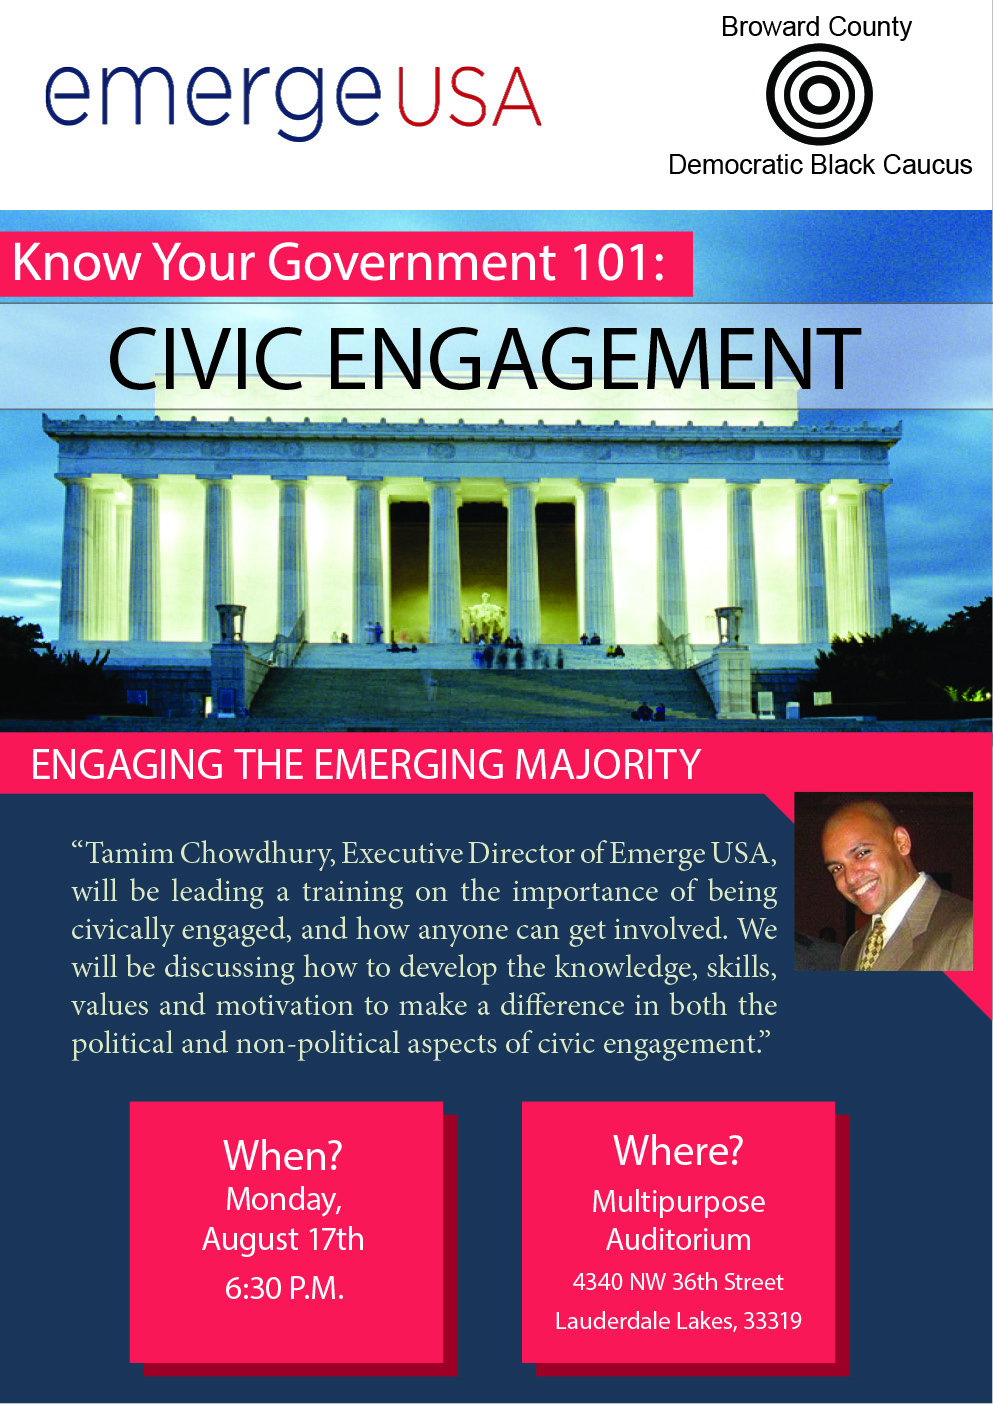 Civic_Engagement_Training_Black_Caucus_08.17.2015.jpg